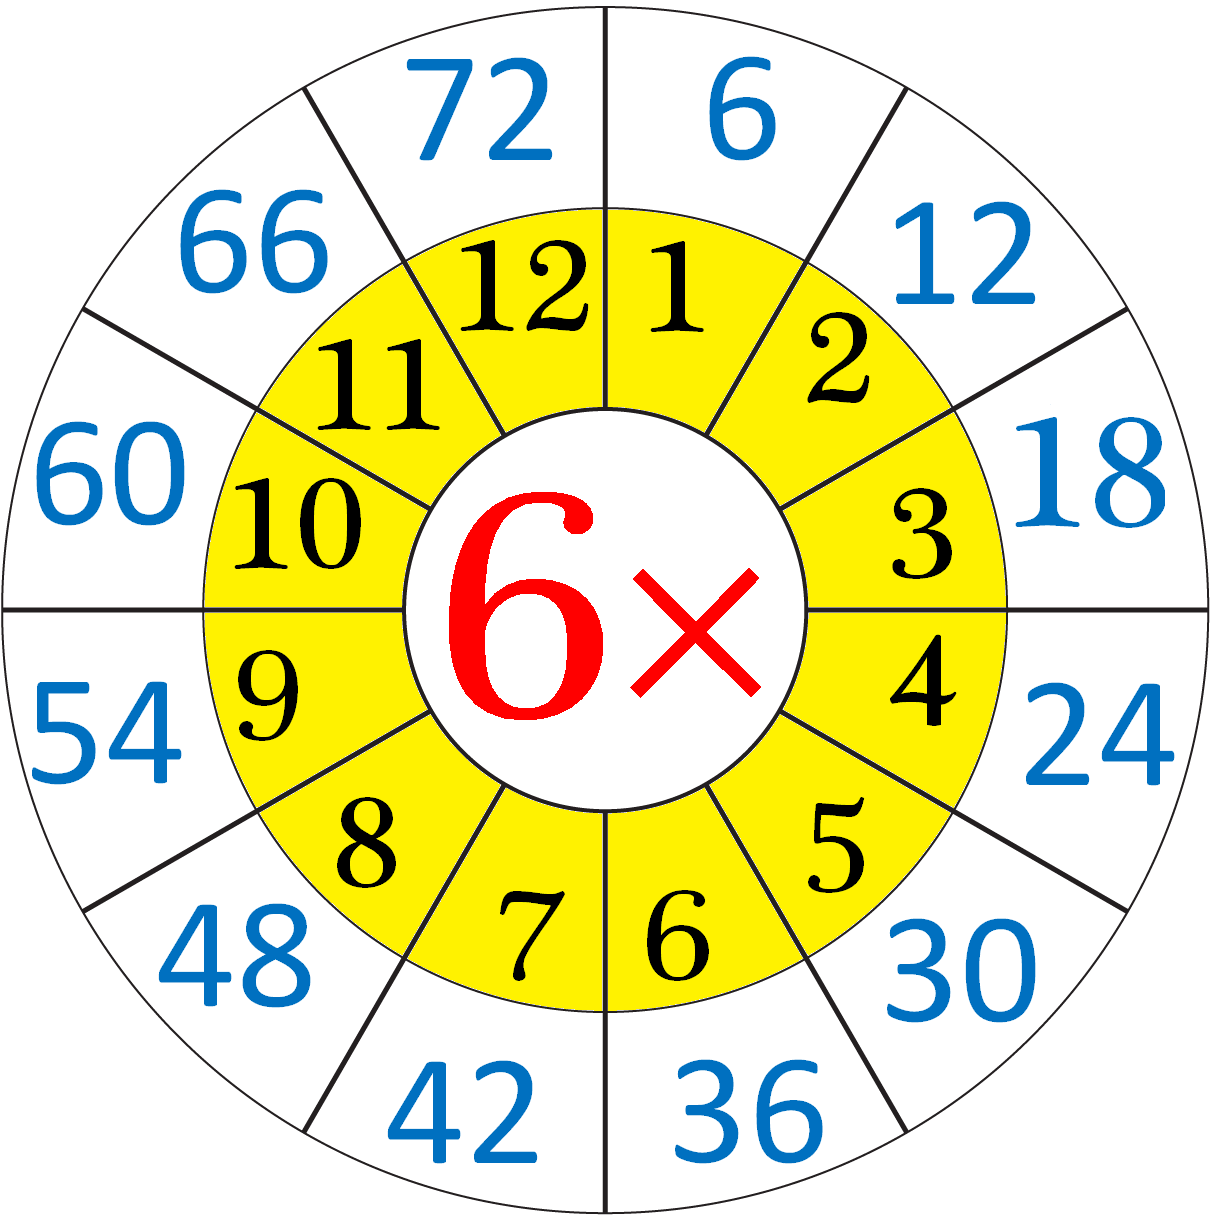 Repeated Addition By 6 S Means The Multiplication Table Of